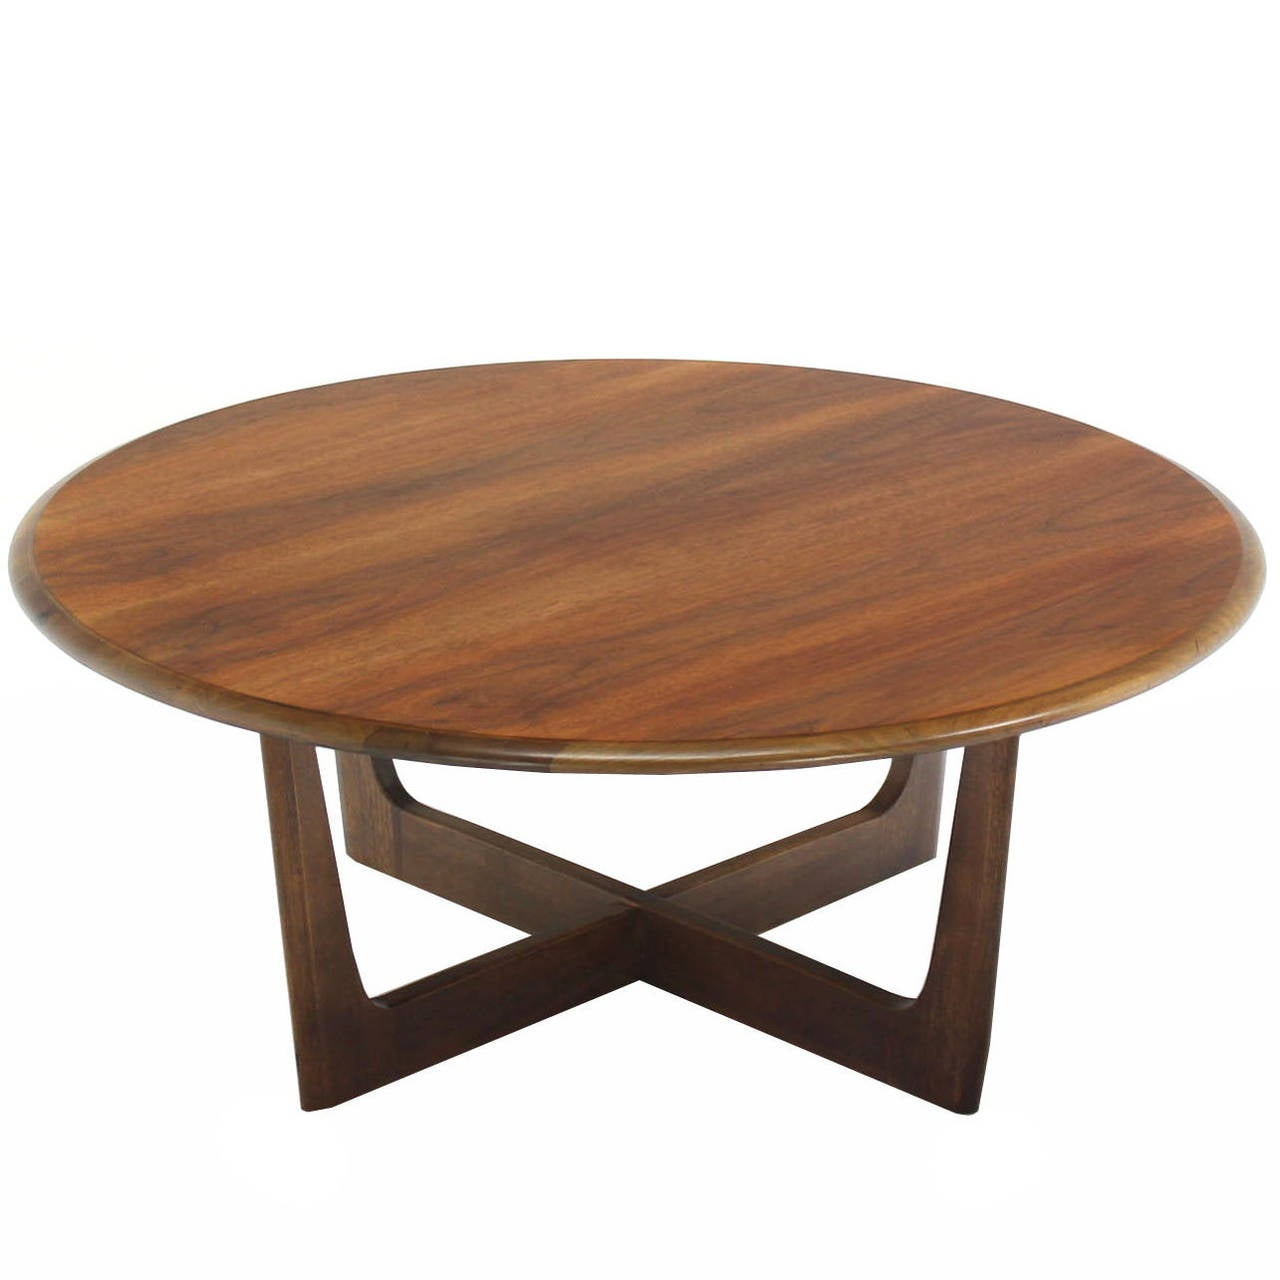 Walnut x base round coffee table at 1stdibs for X coffee tables